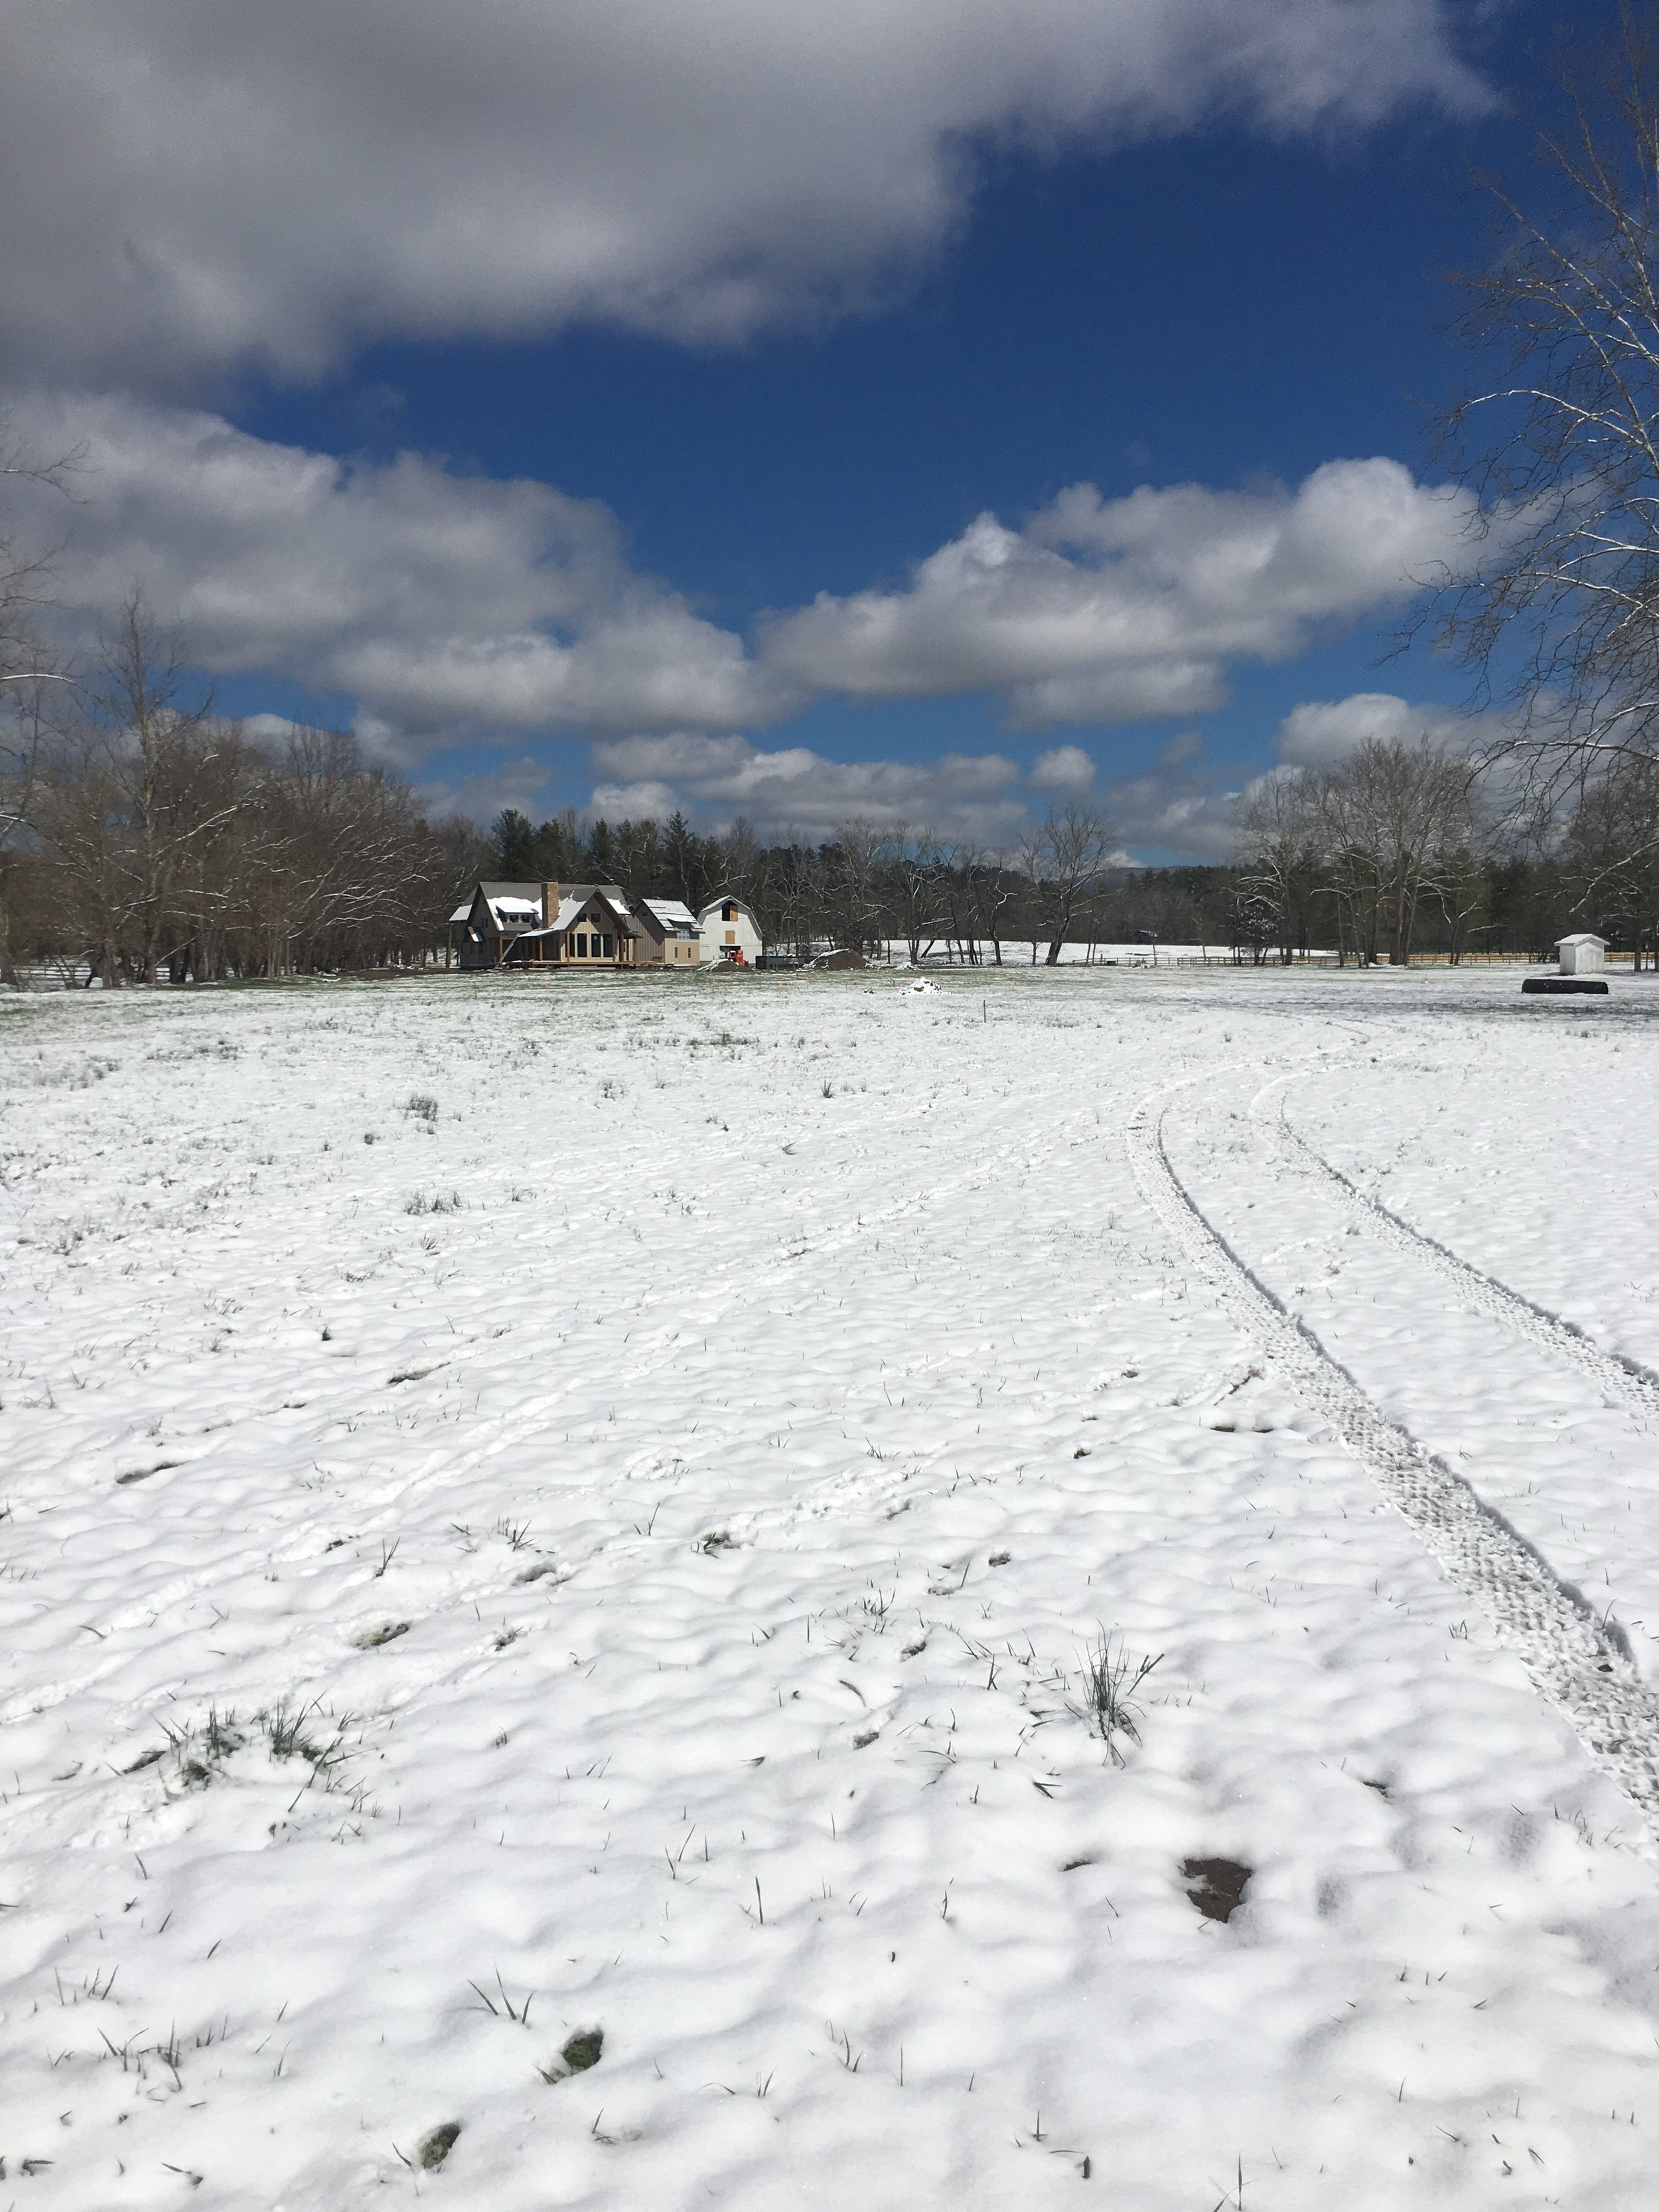 Future home site blanketed in a recent spring snow!